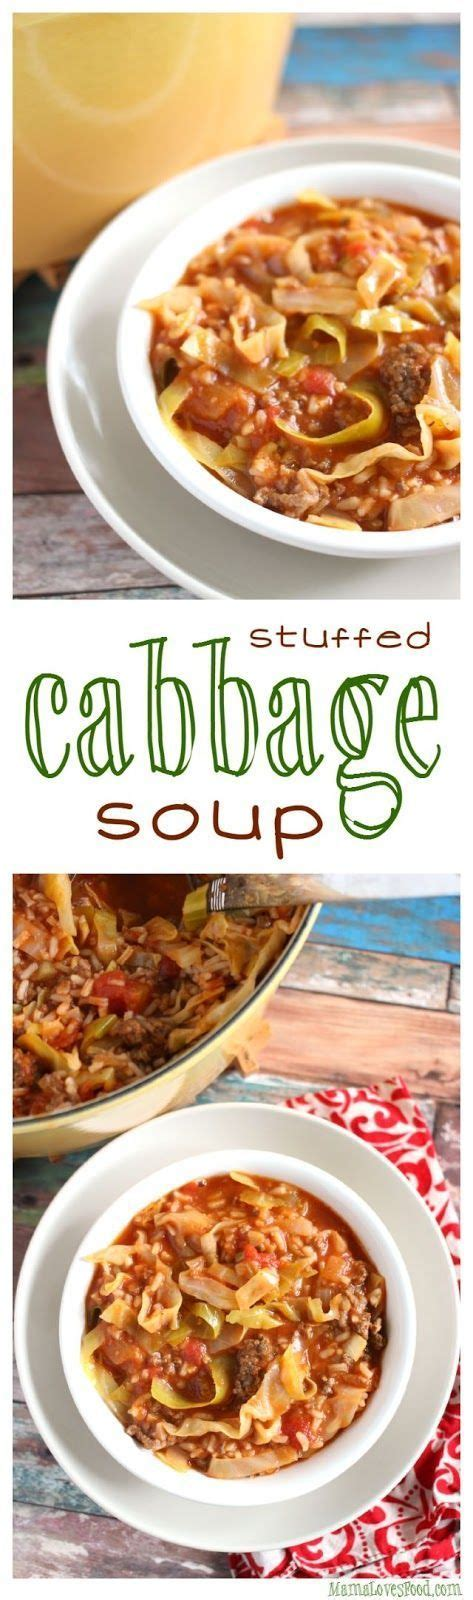 warm comfort food stuffed cabbage soup there is nothing like warm comfort